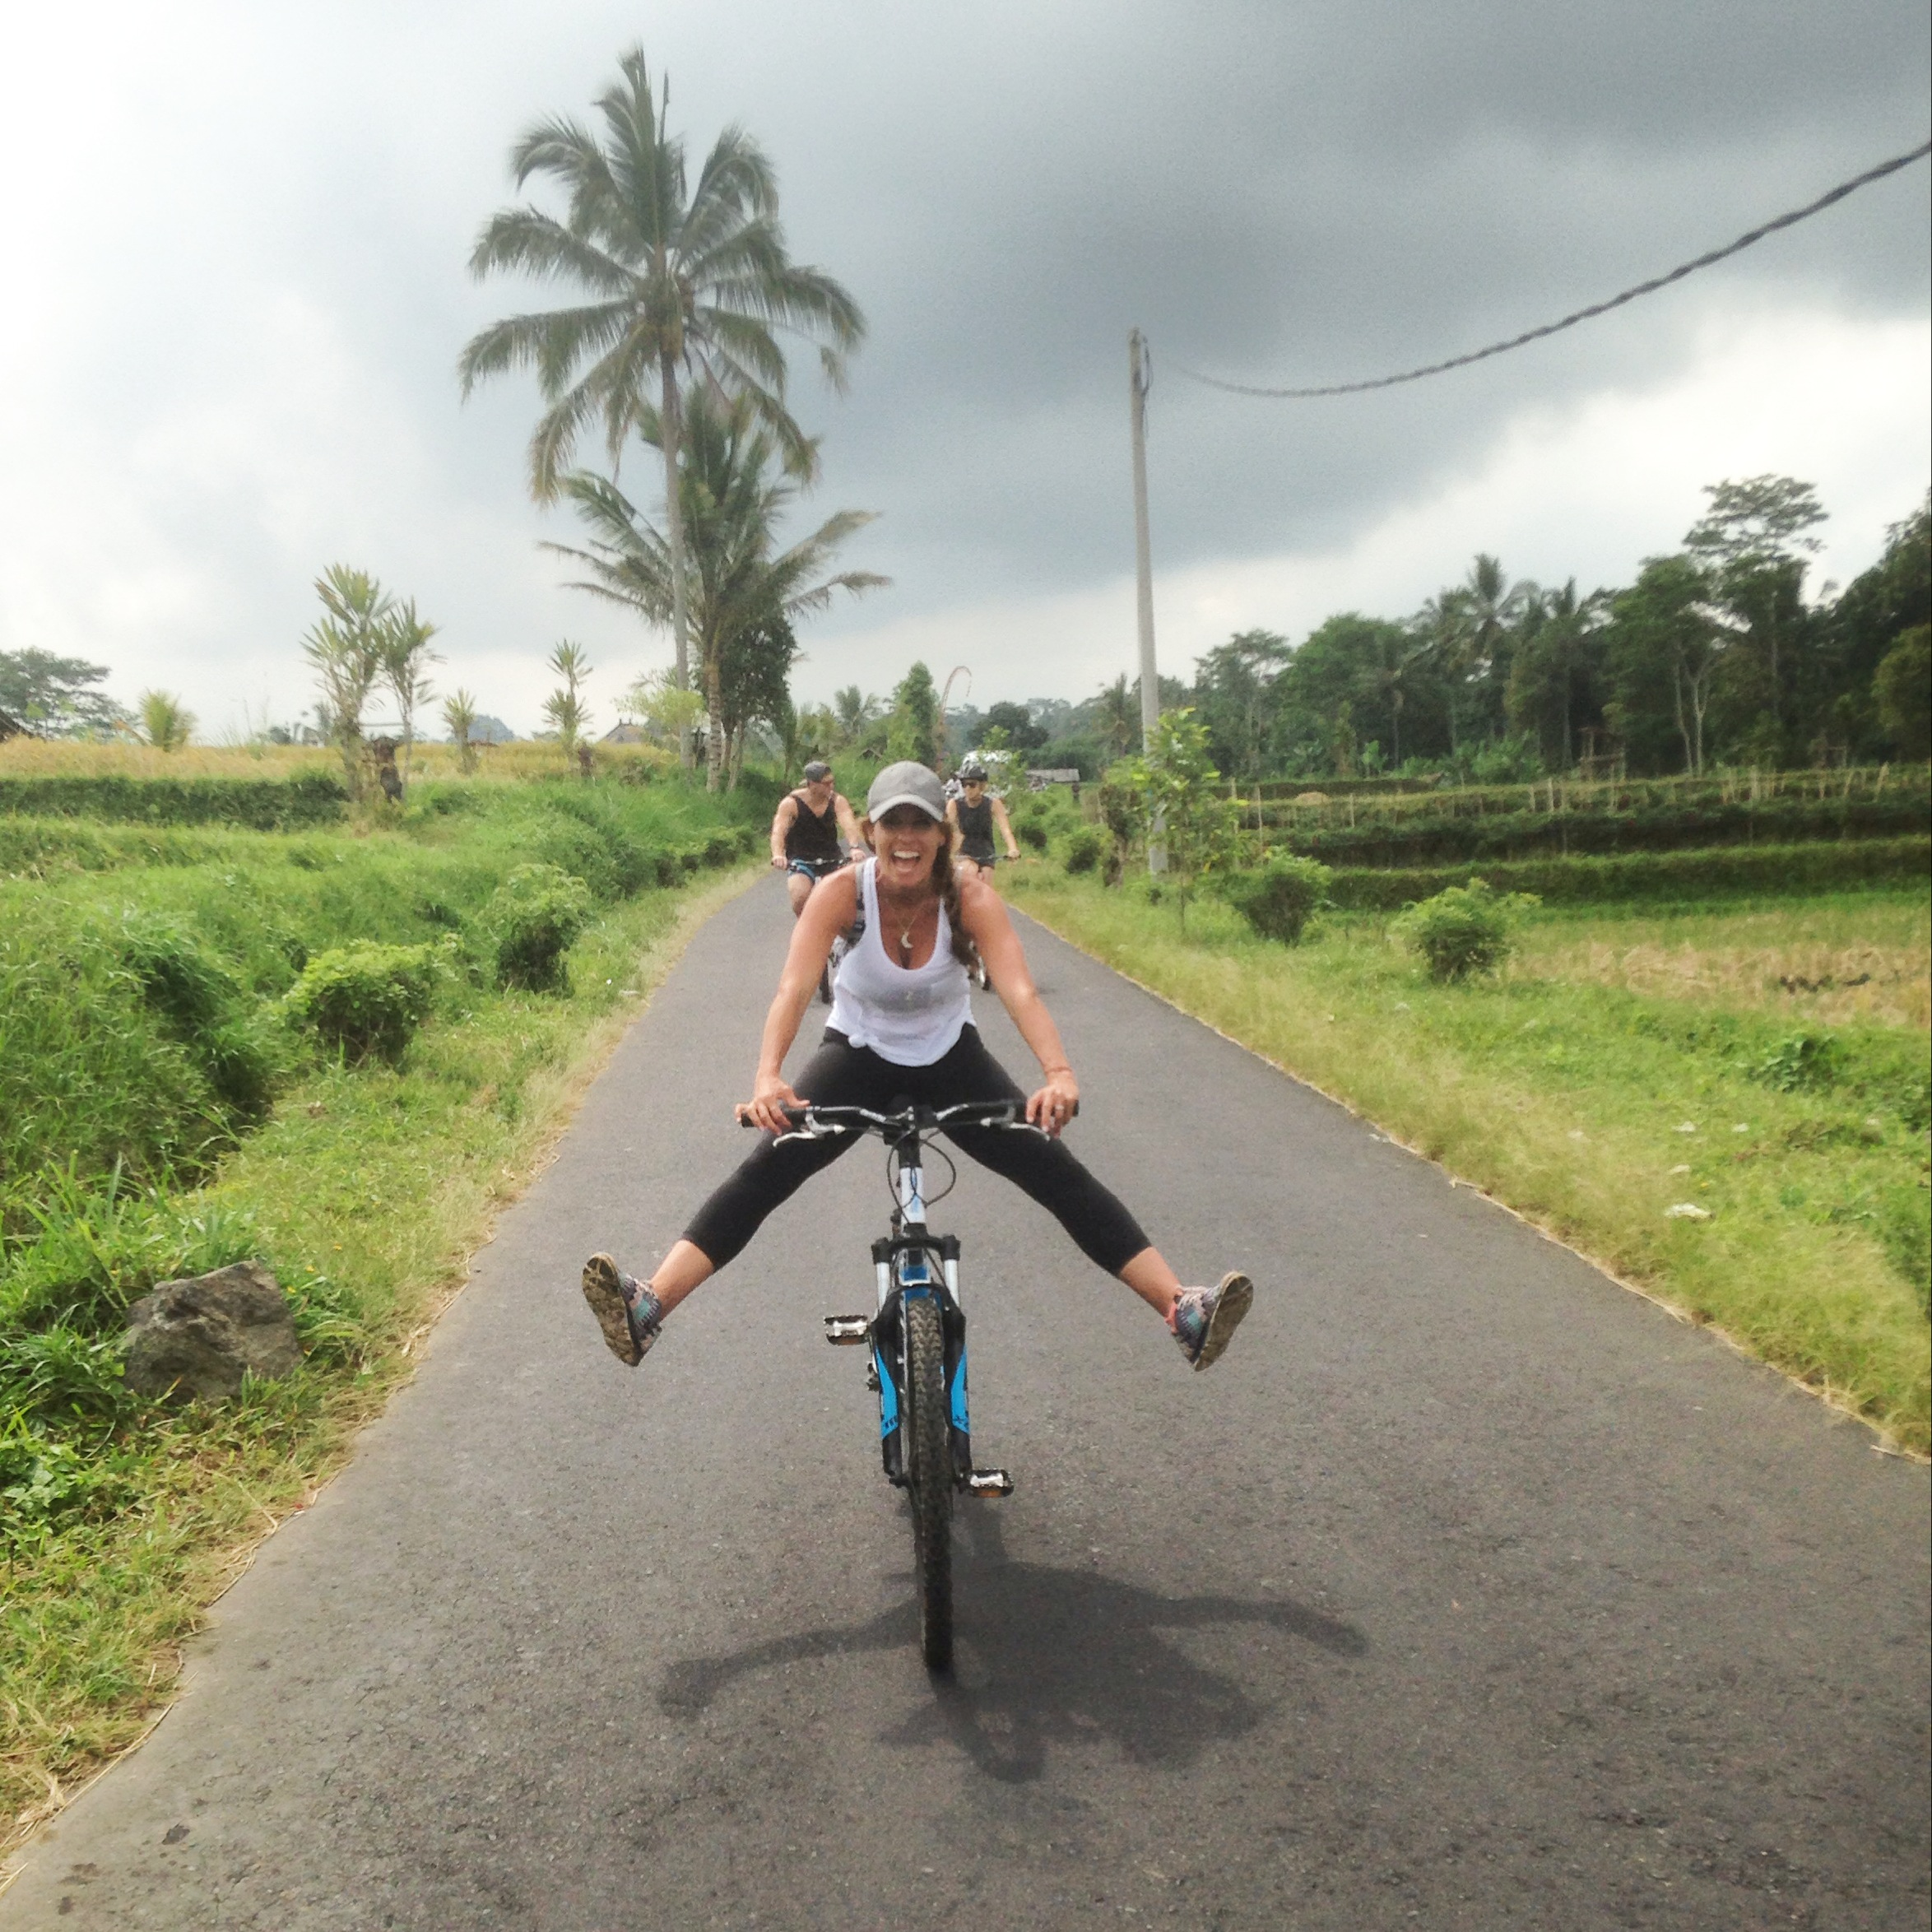 Biking, adventure and waking up early… three things in one experience that made me happy :)